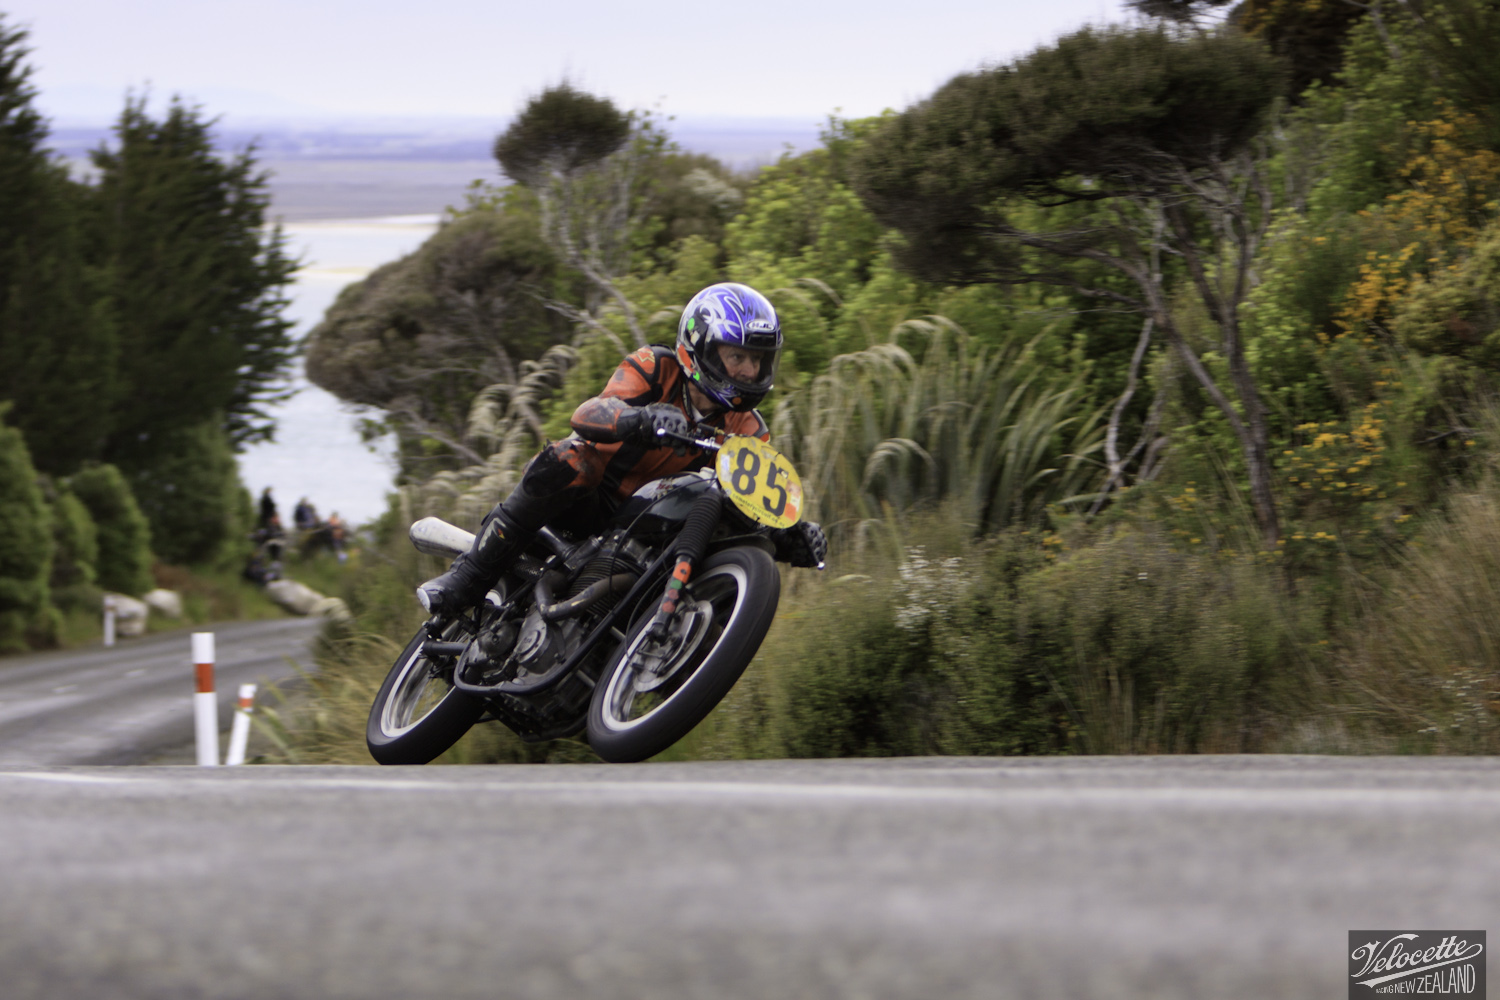 Bluff Hill, Bluff HIll Climb, BSA Goldstar 500, Burt Munro Challenge, Classic Pre '63, Flagstaff Road, Graham Peters, Motupohue, New Zealand, NZ Hill Climb Champs, Rider 85